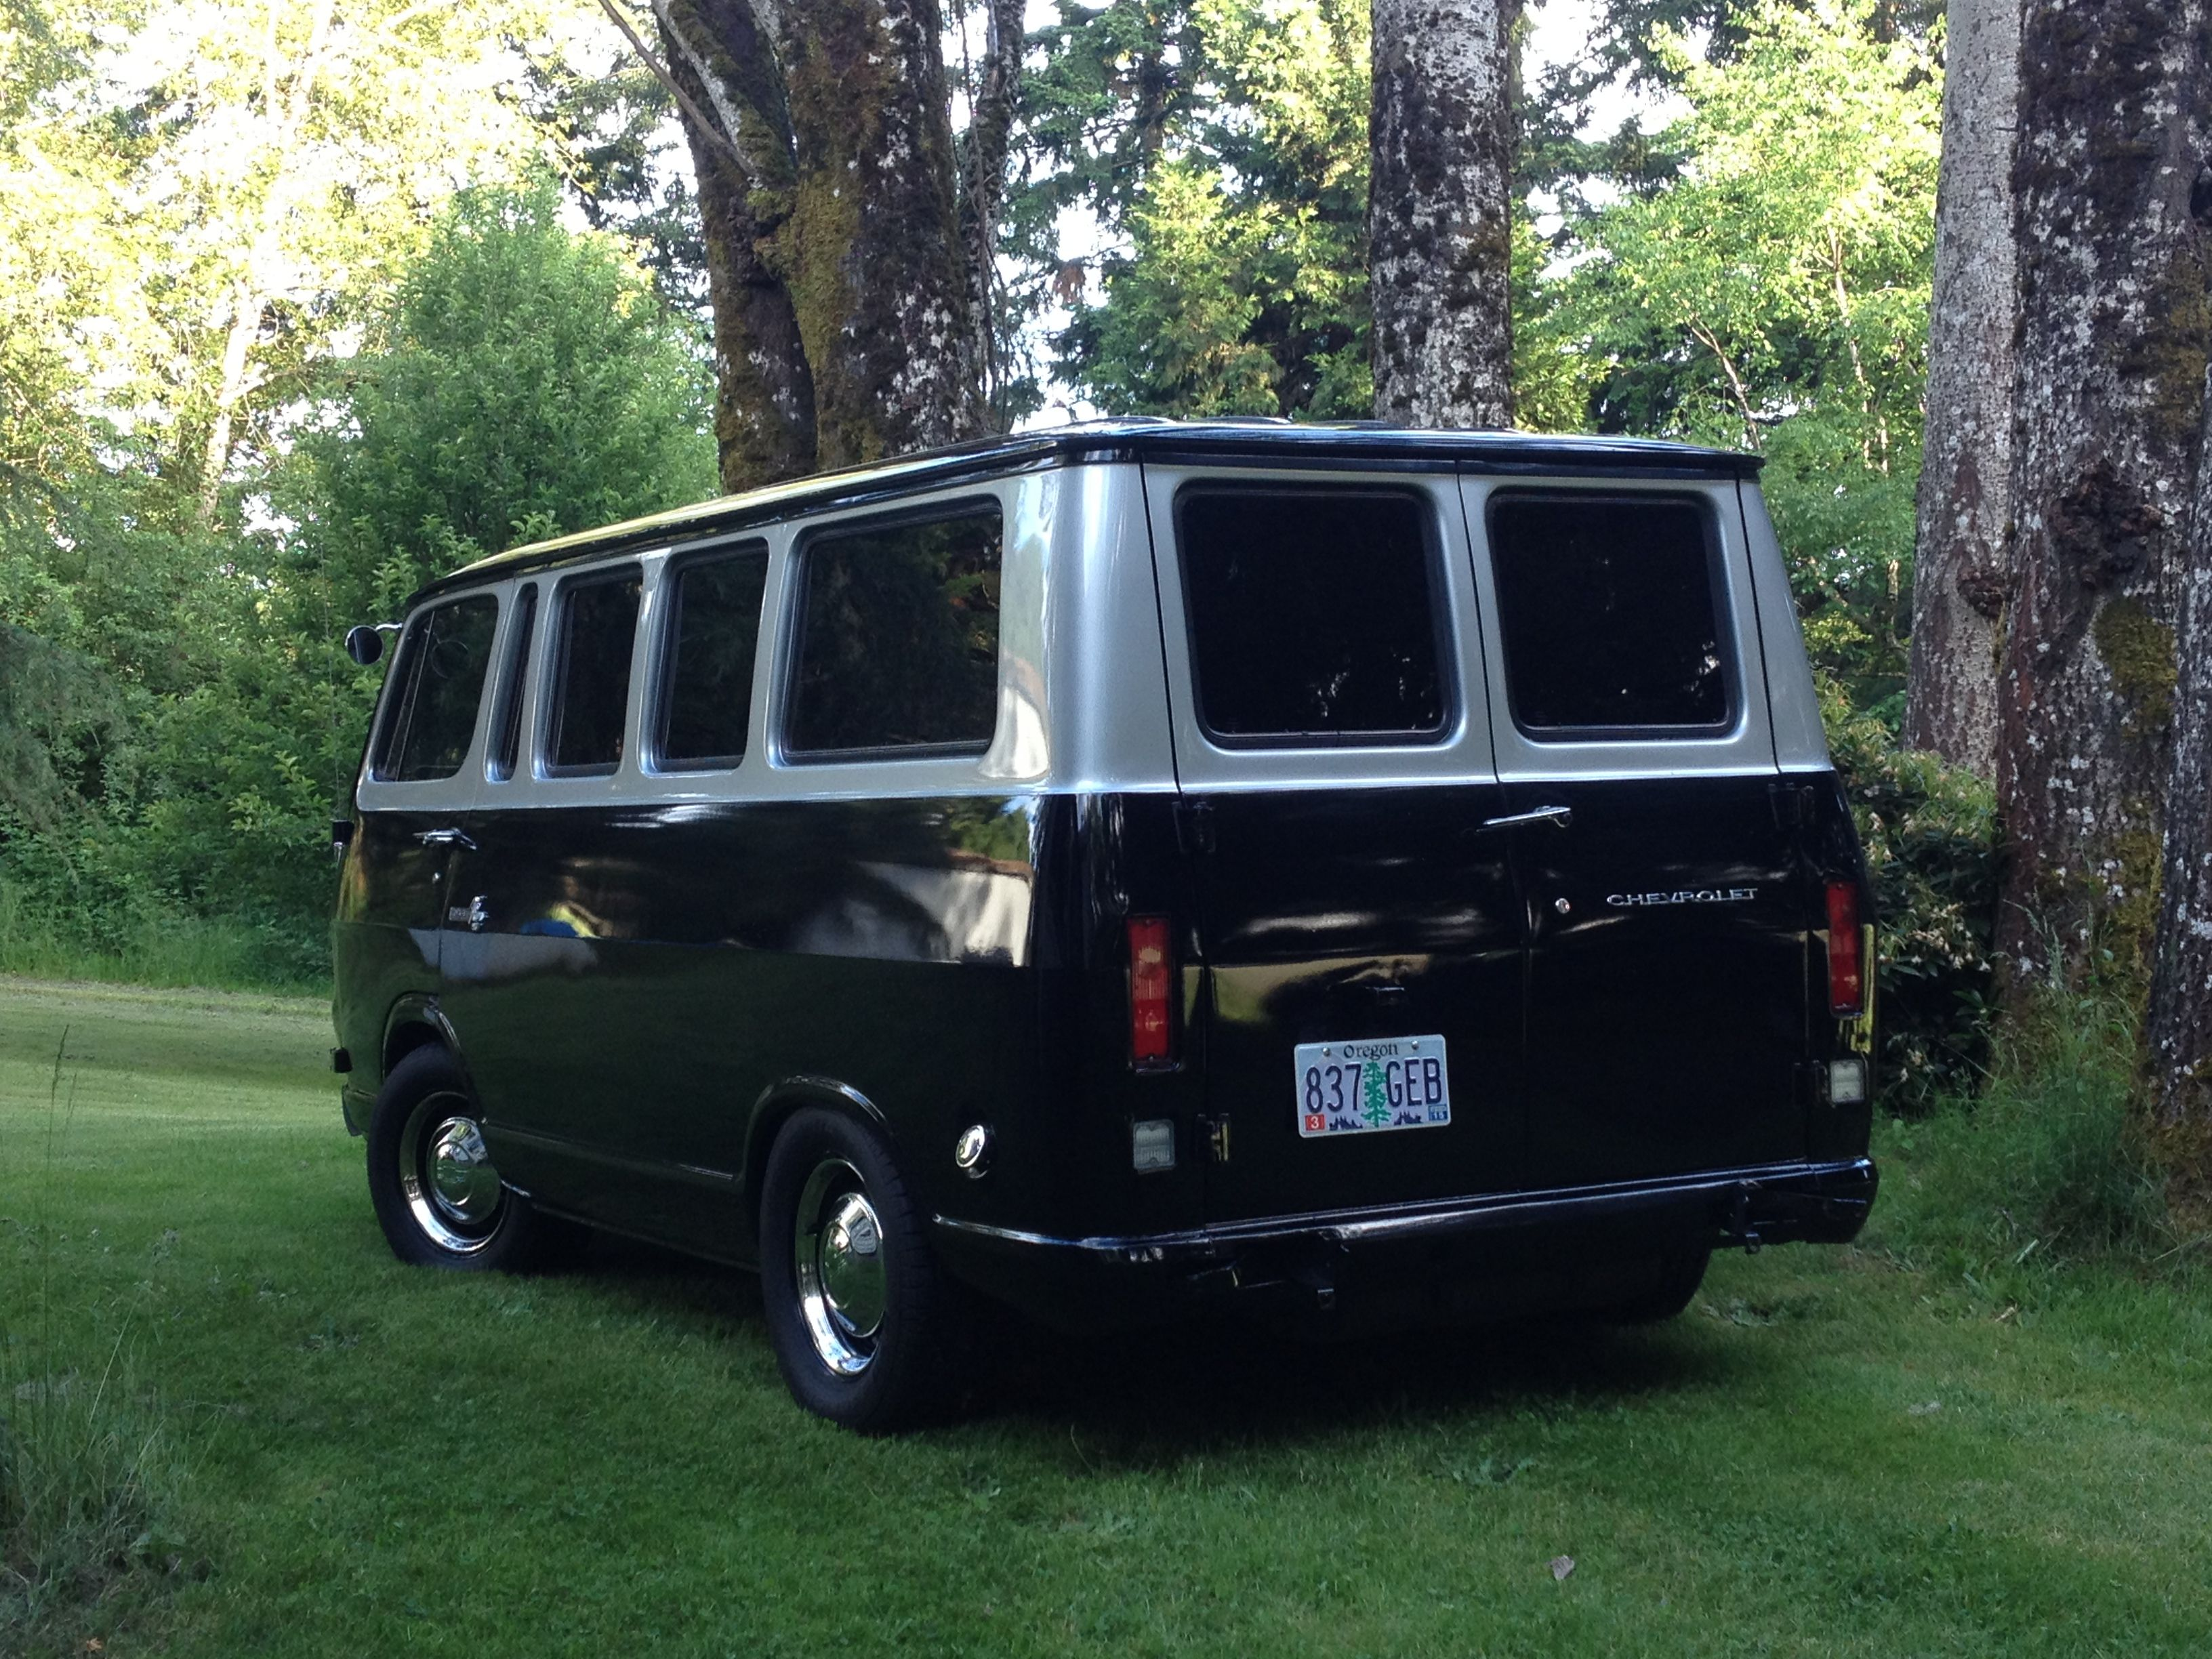 Vintage 67 Chevy van | Vans for Cam | Pinterest | Chevy vans, Vans ...